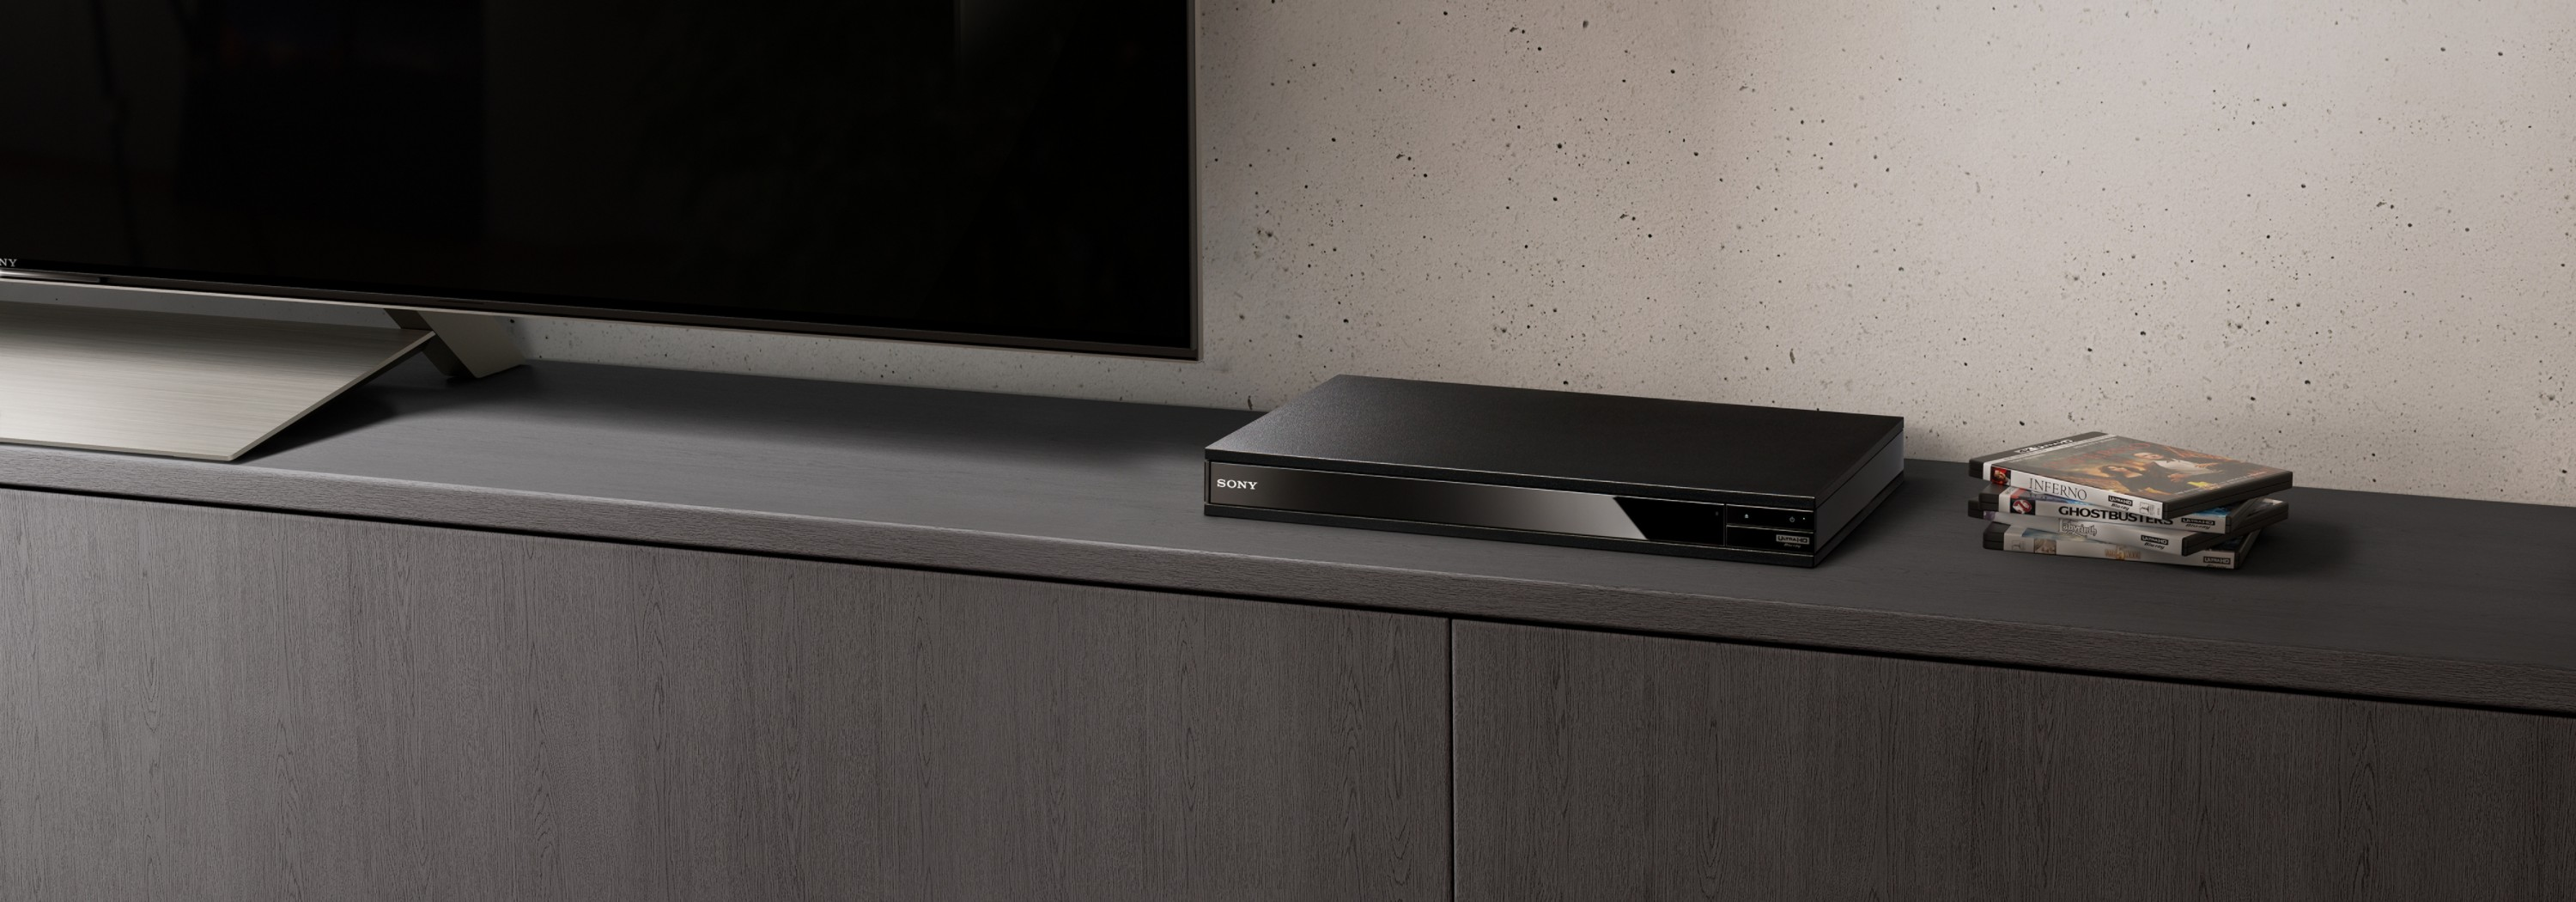 sony d mocratise l 39 ultra hd avec la moins ch re des platines blu ray frandroid. Black Bedroom Furniture Sets. Home Design Ideas